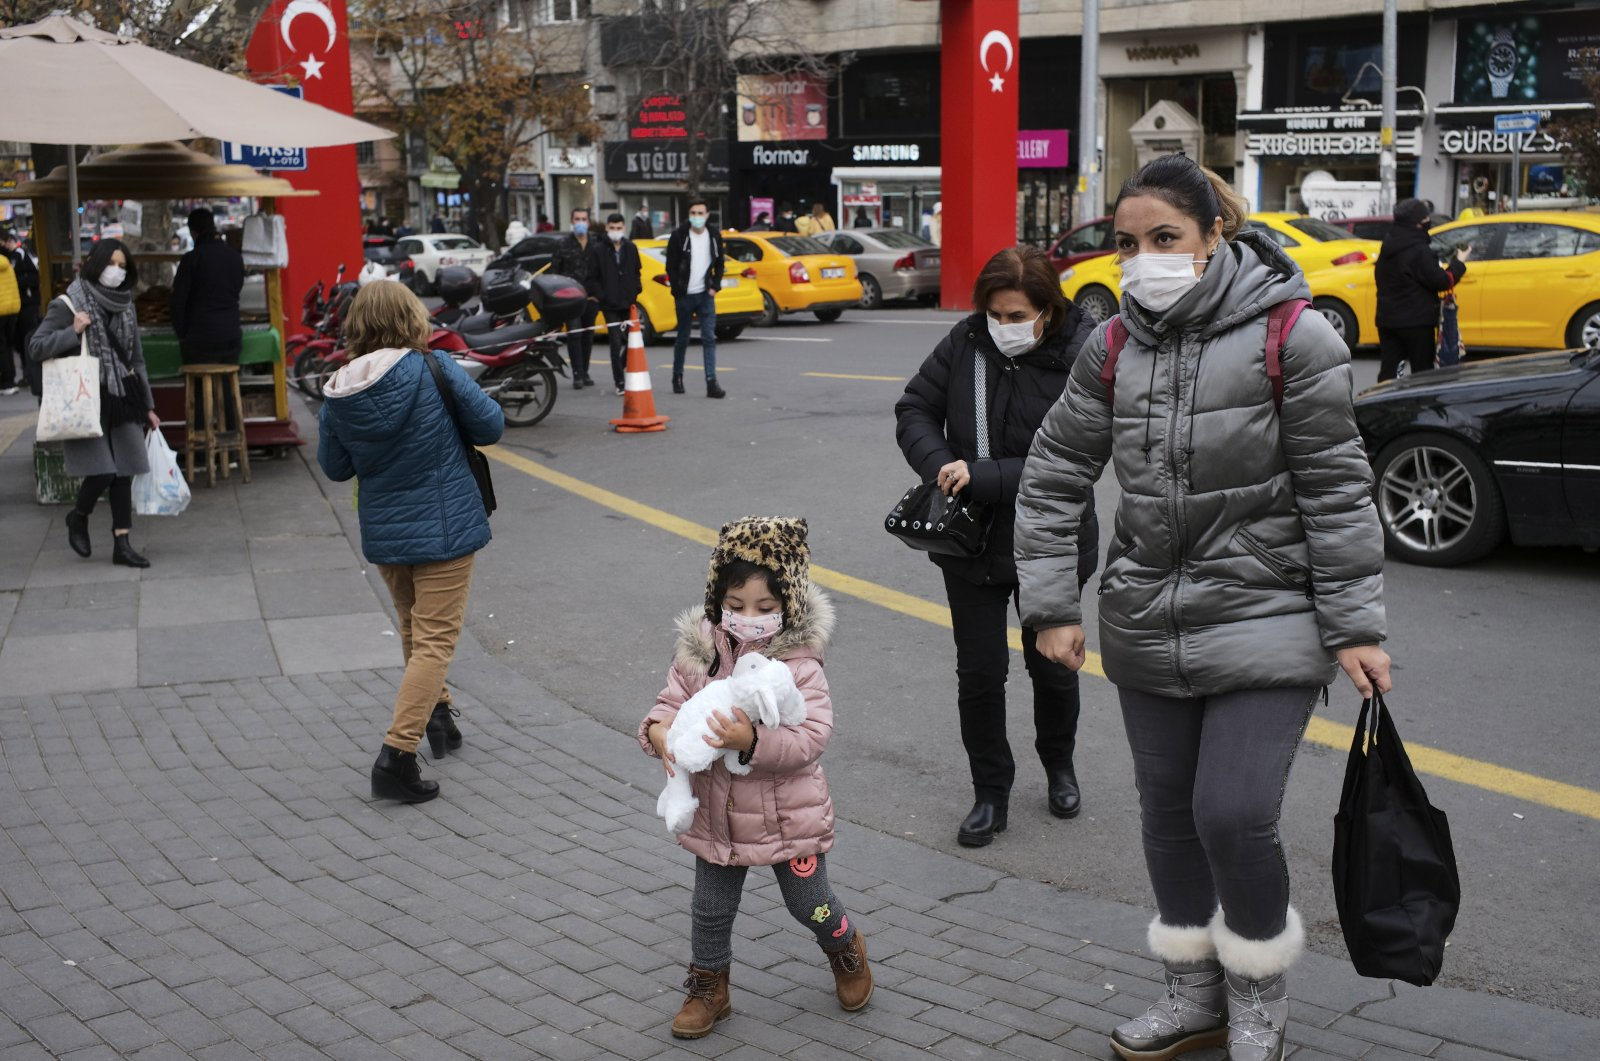 People wearing face masks to protect against coronavirus, walk along a street hours before a two-day weekend curfew, in Ankara, Turkey, Dec. 18, 2020. (AP Photo)